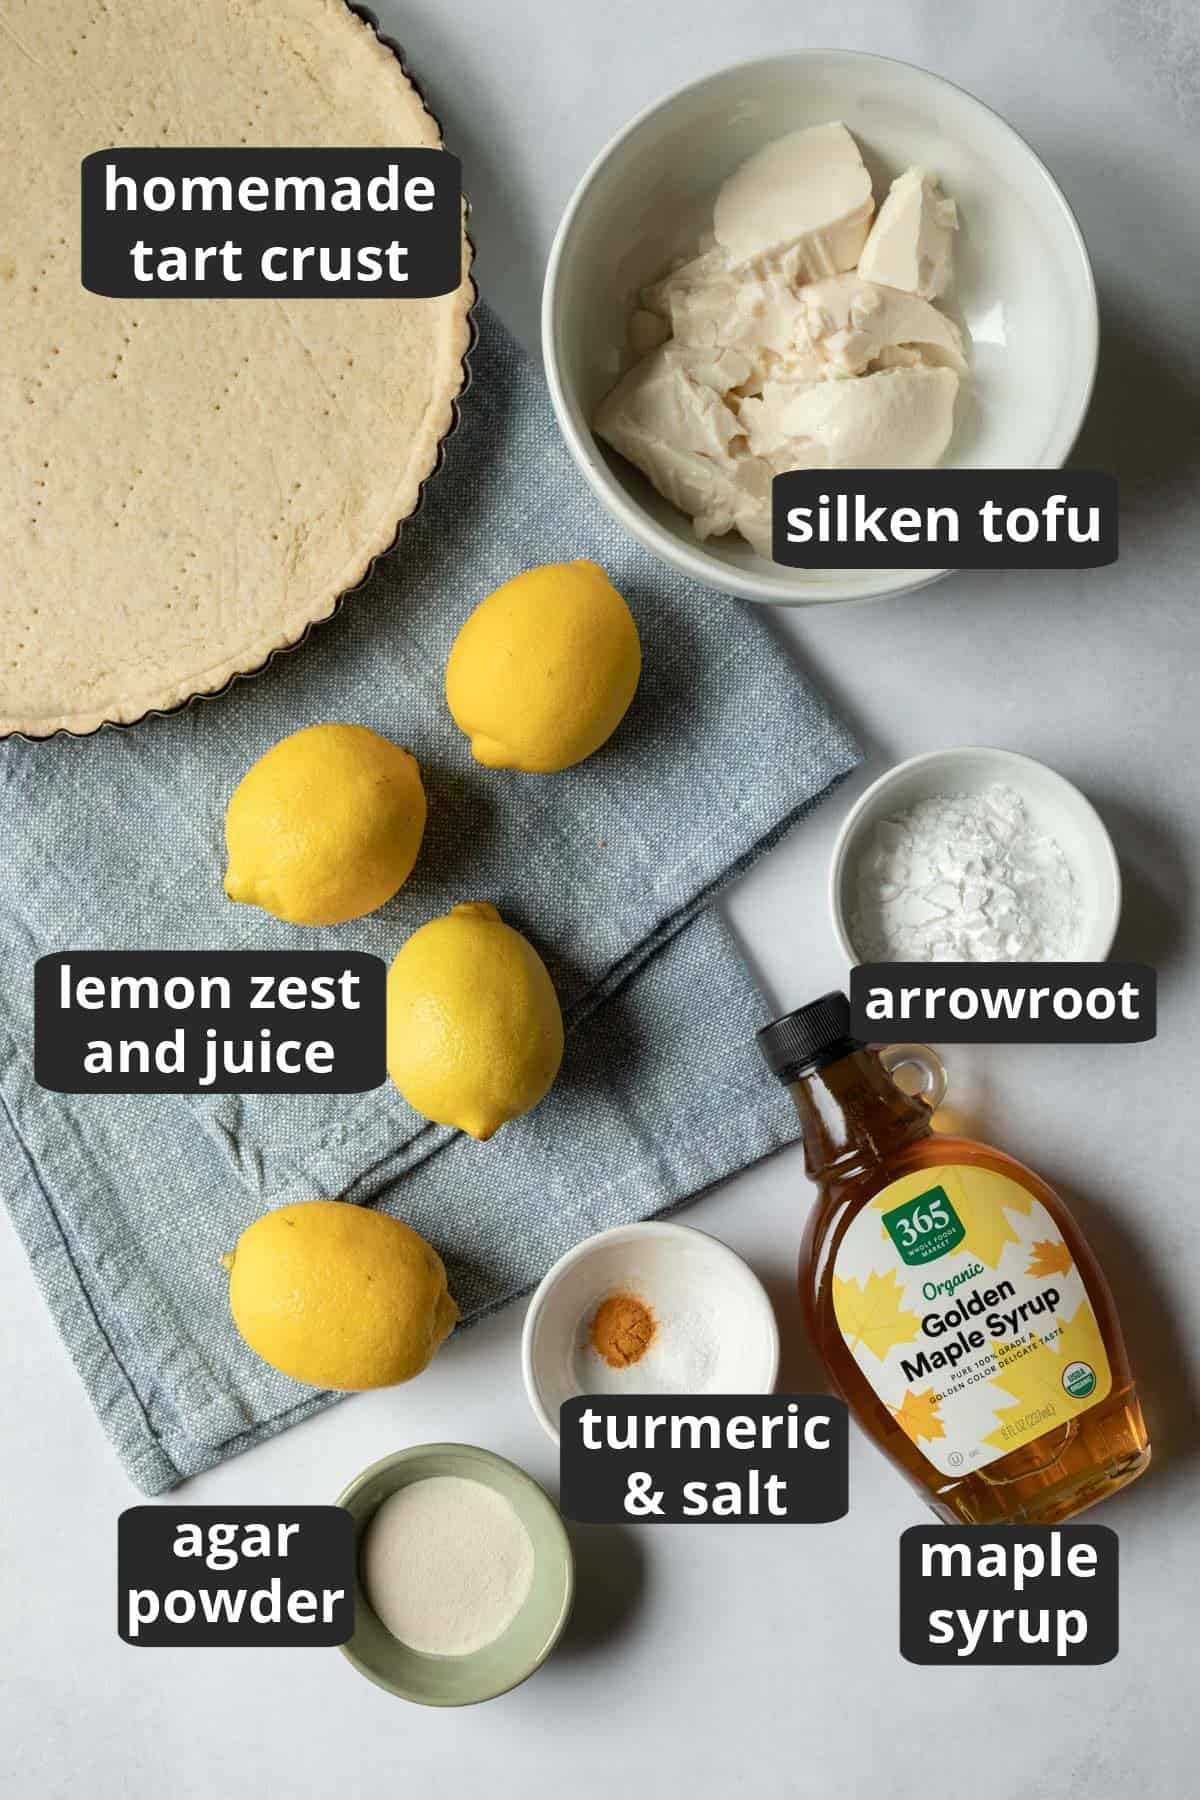 labeled photo of ingredients needed.